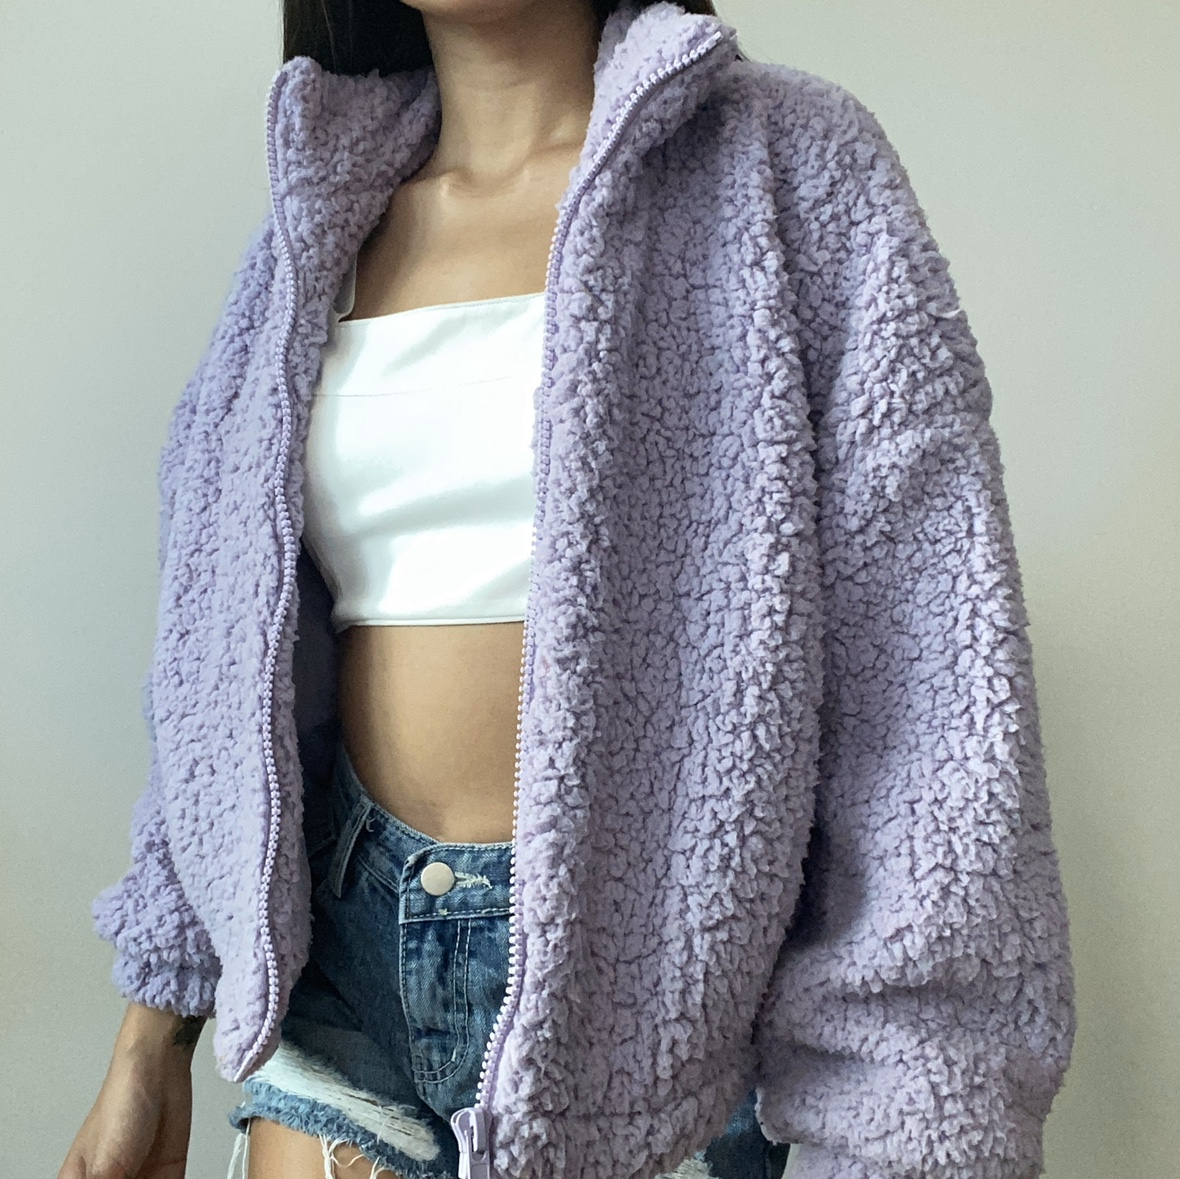 Product Image 1 - URBAN OUTFITTERS - With tag - Small   ‼️PLEASE